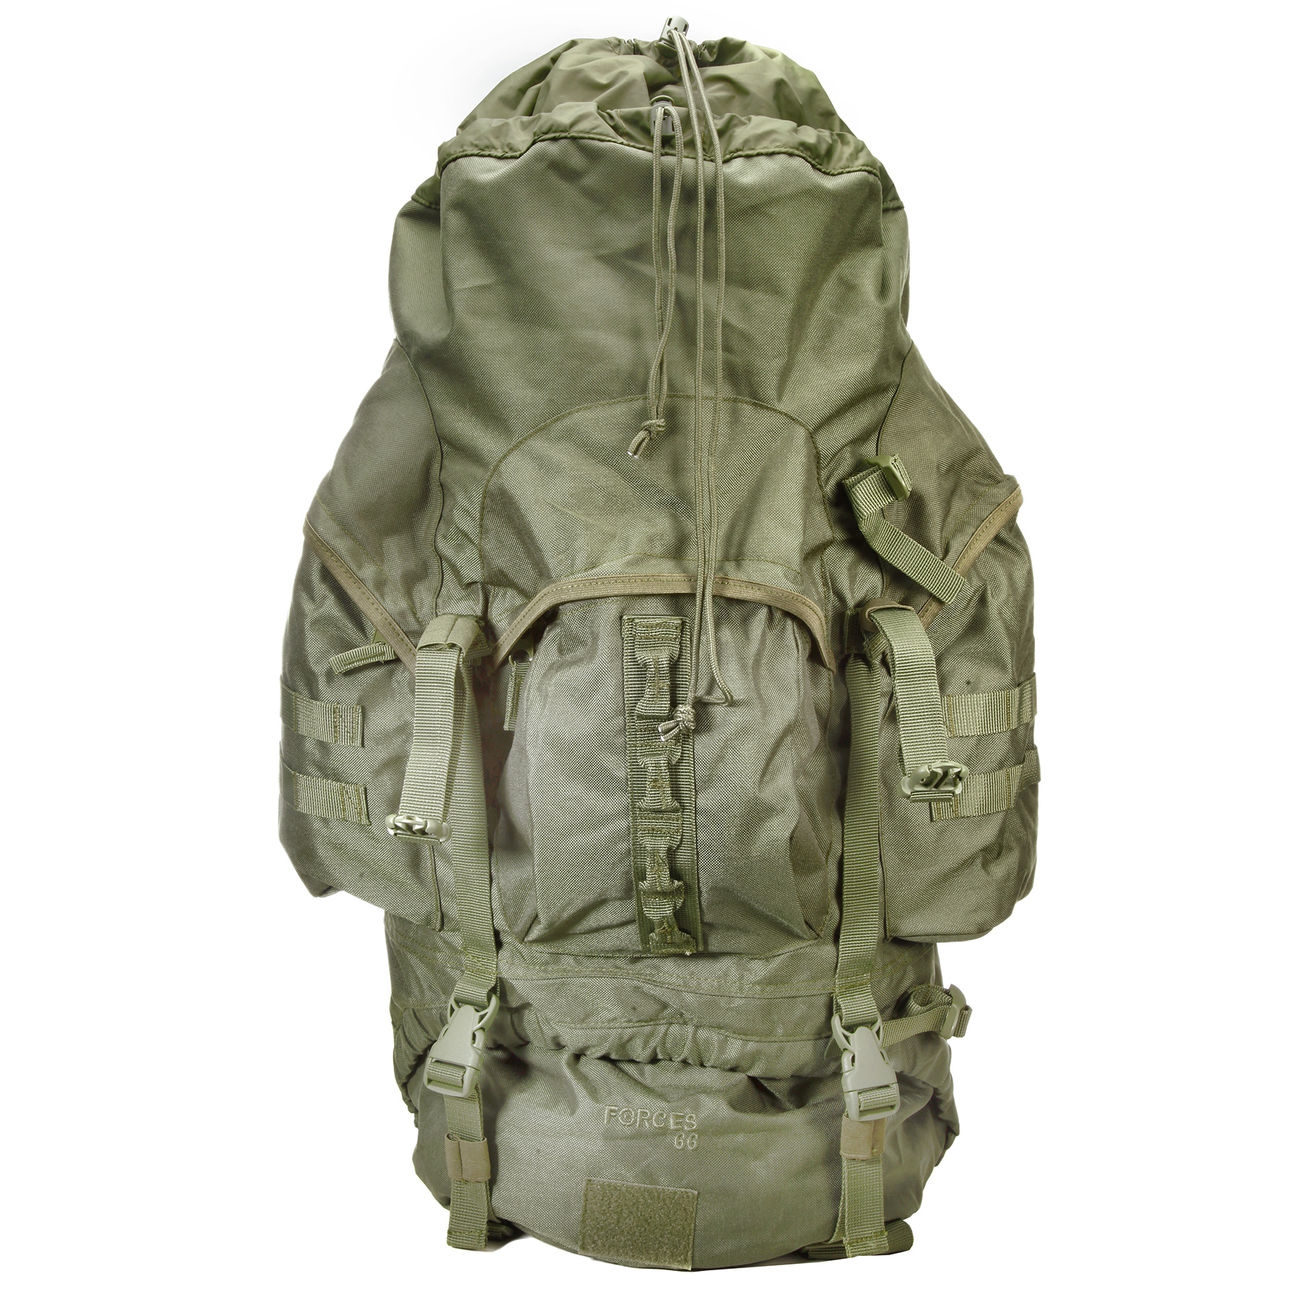 Highlander Rucksack Modell New Forces 66 Liter oliv 6